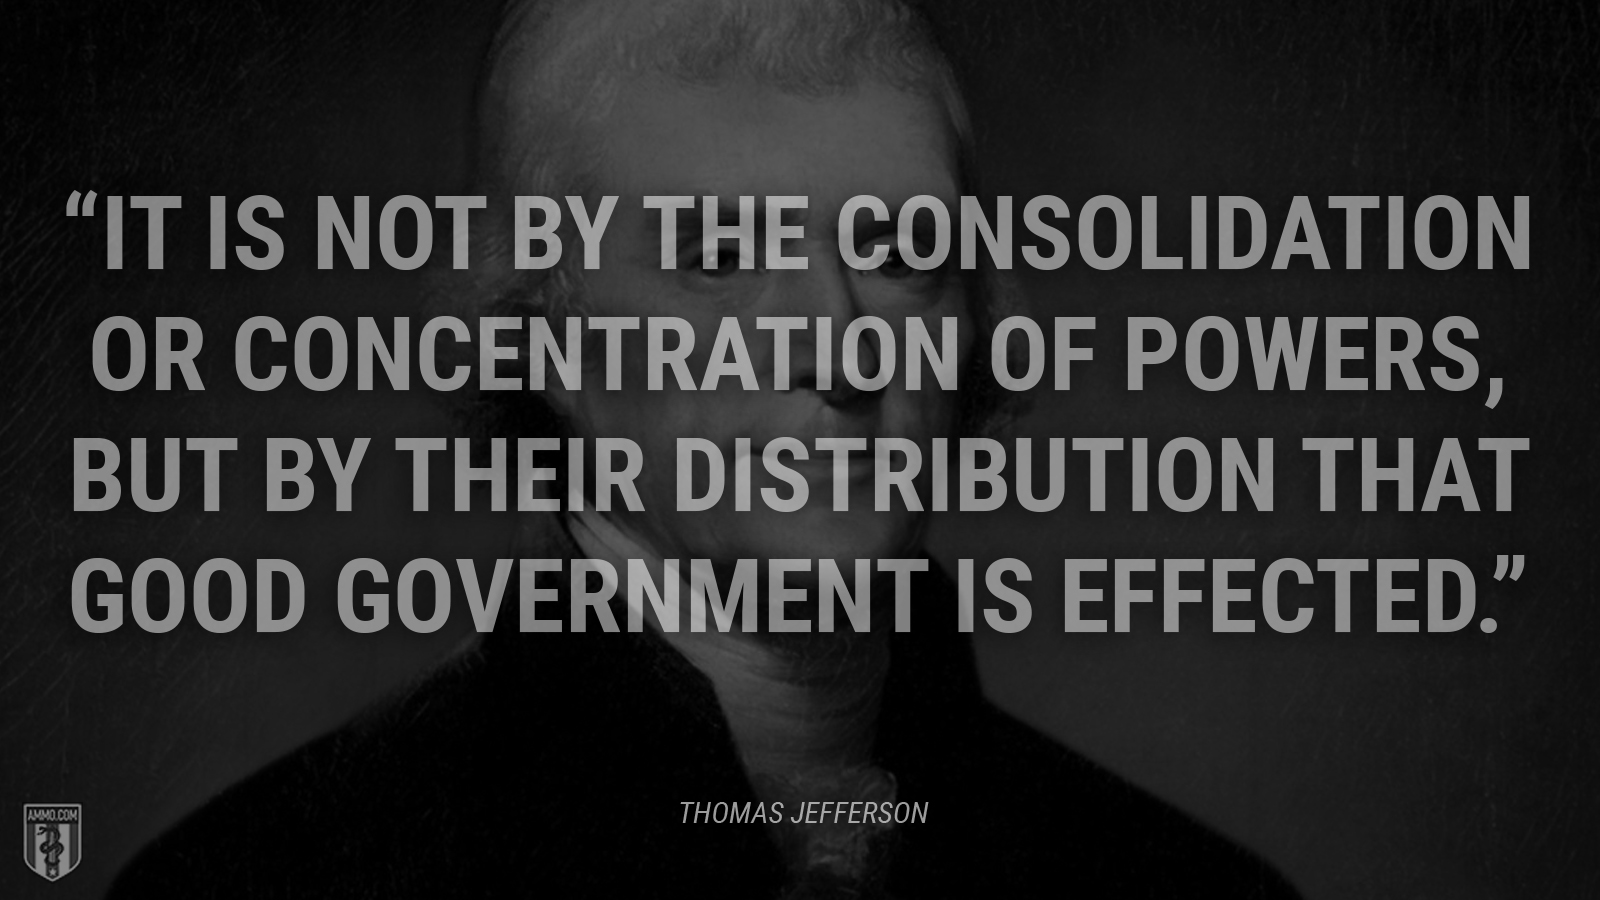 """It is not by the consolidation or concentration of powers, but by their distribution that good government is effected."" - Thomas Jefferson"